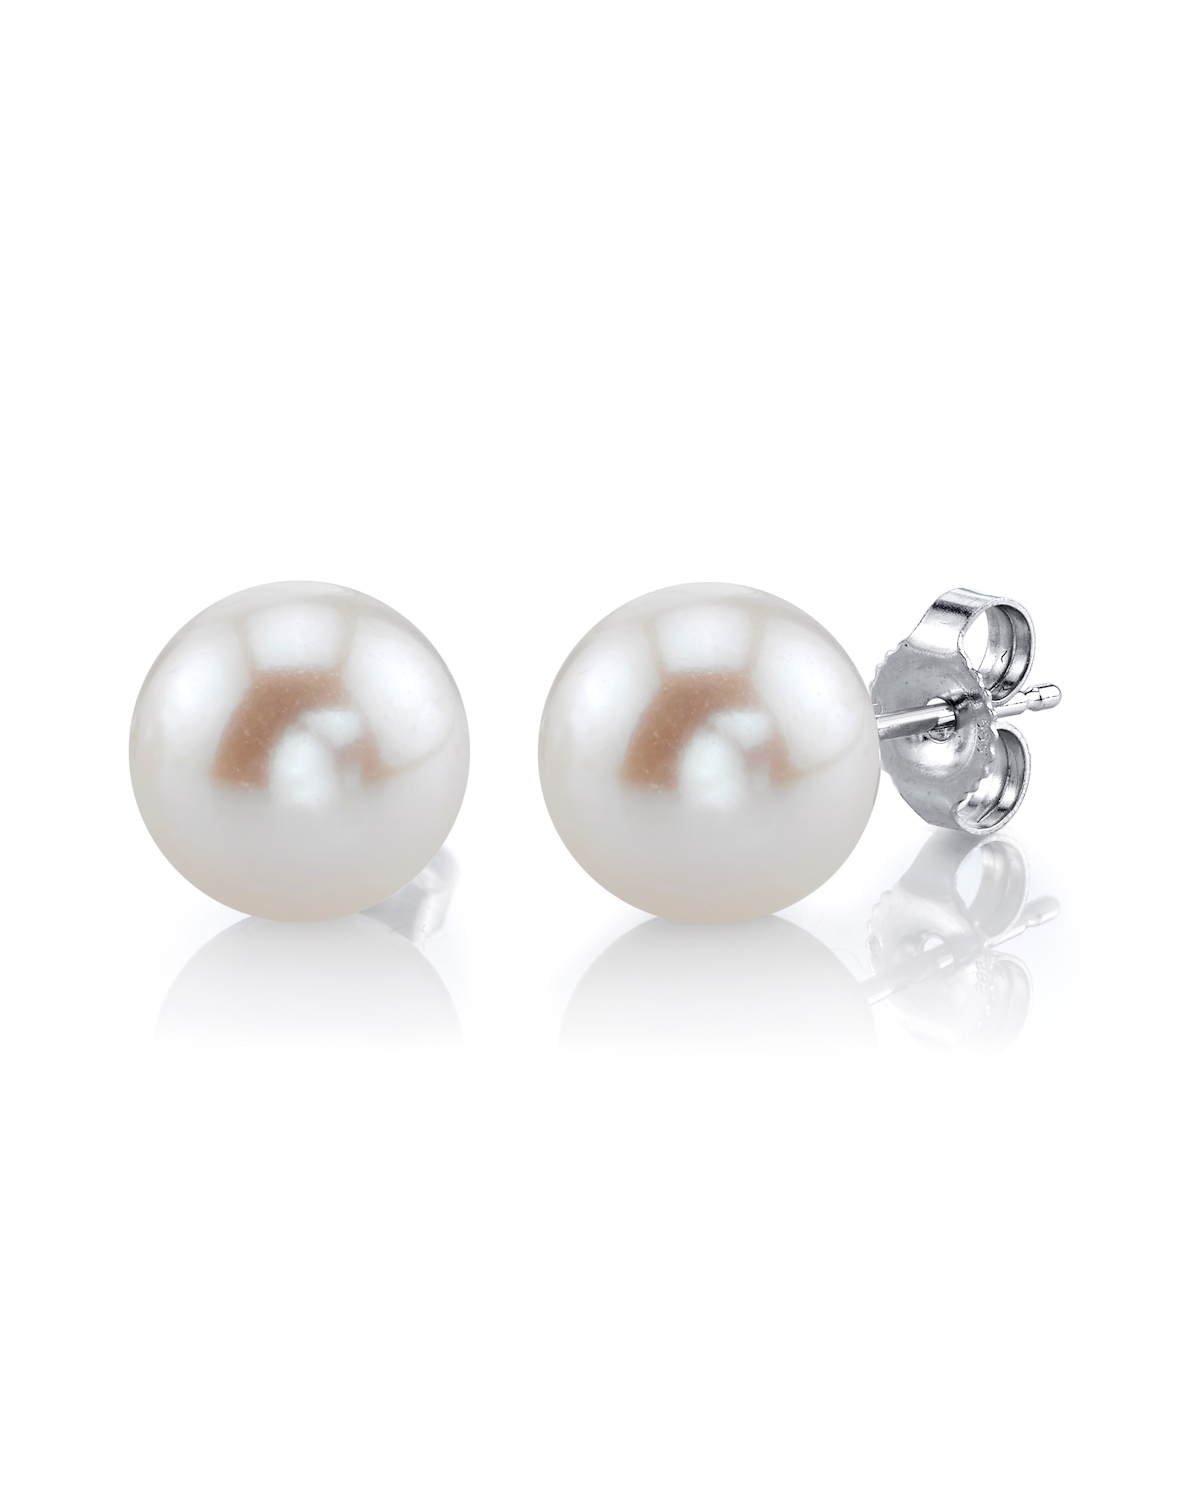 Pearl-Stud Best Ways to Choose Most Stylish Earrings